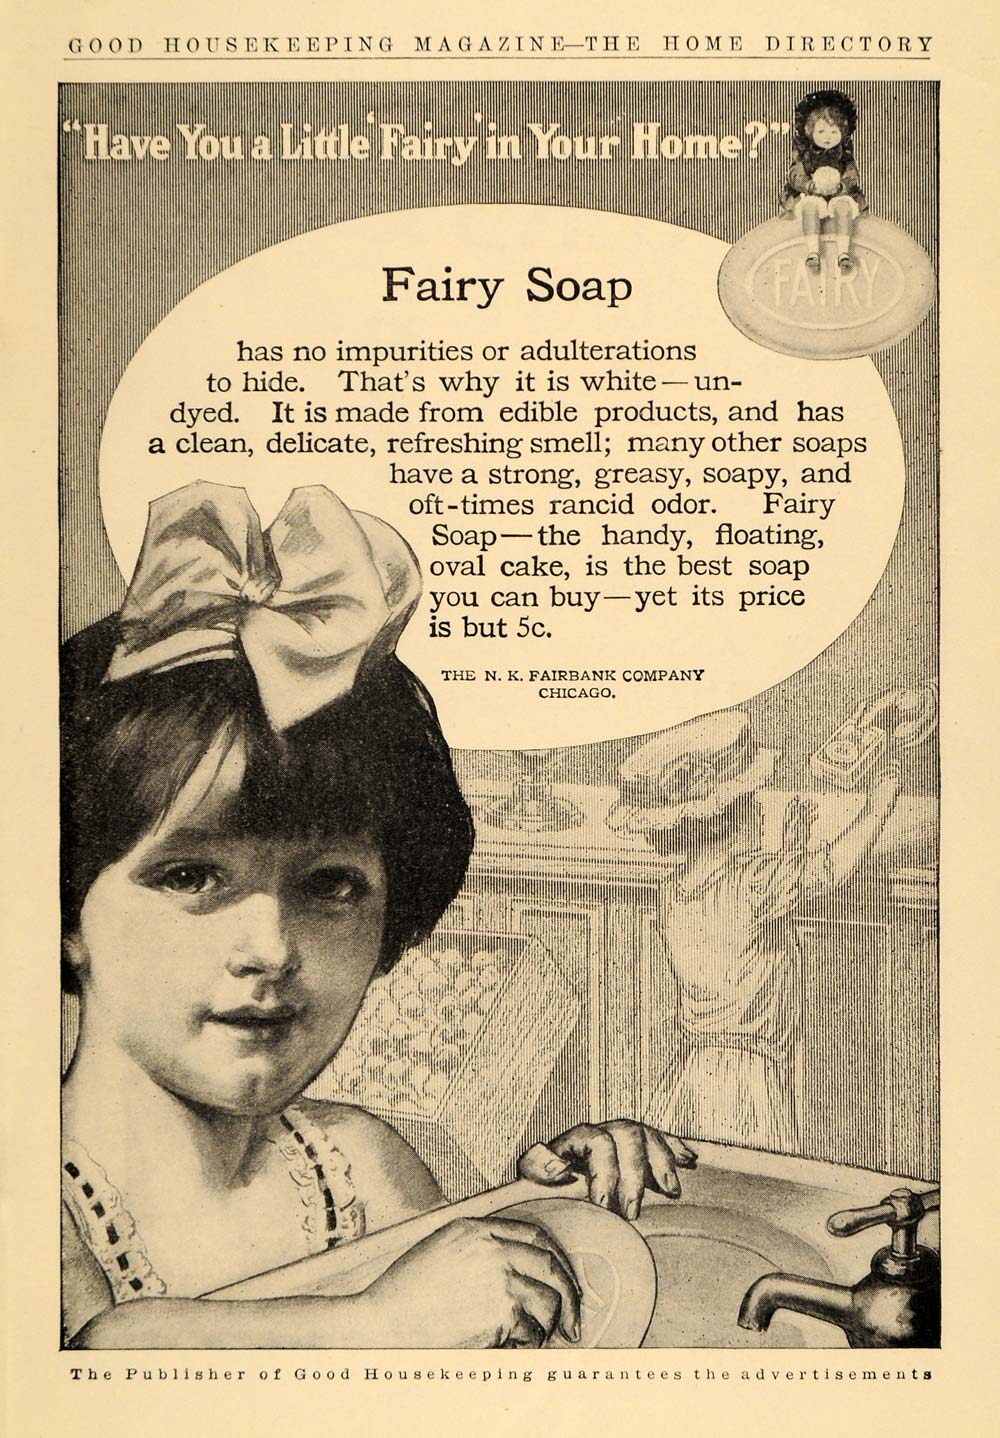 1910 Ad Fairbank Fairy Toilet Bath Soap Child Ribbon - ORIGINAL ADVERTISING GH2